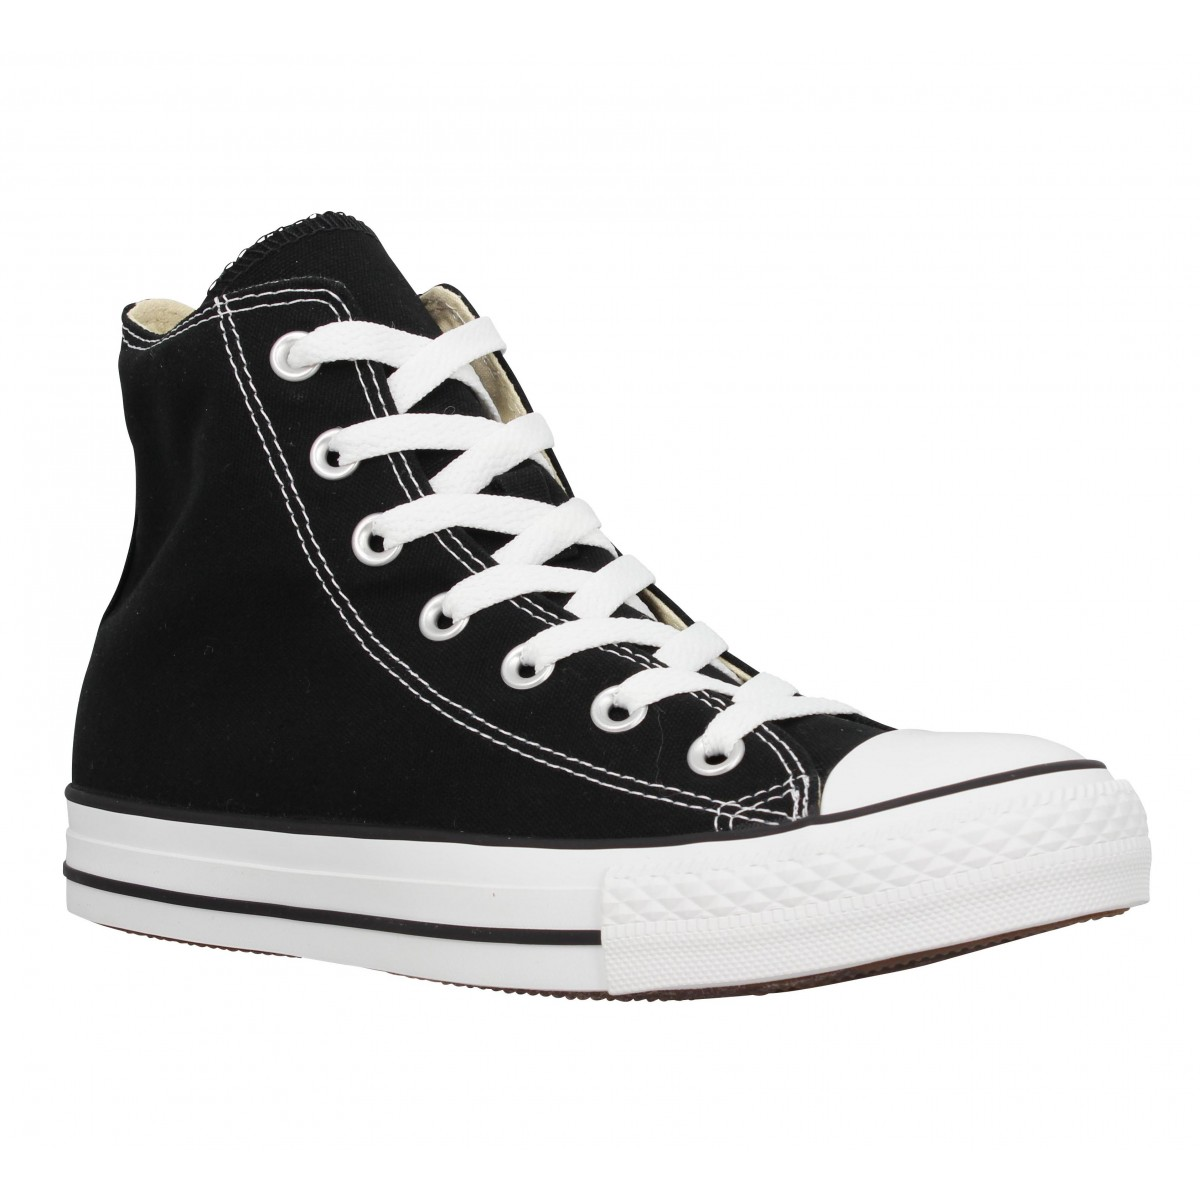 Baskets CONVERSE Chuck Taylor All Star Hi toile Femme Noir